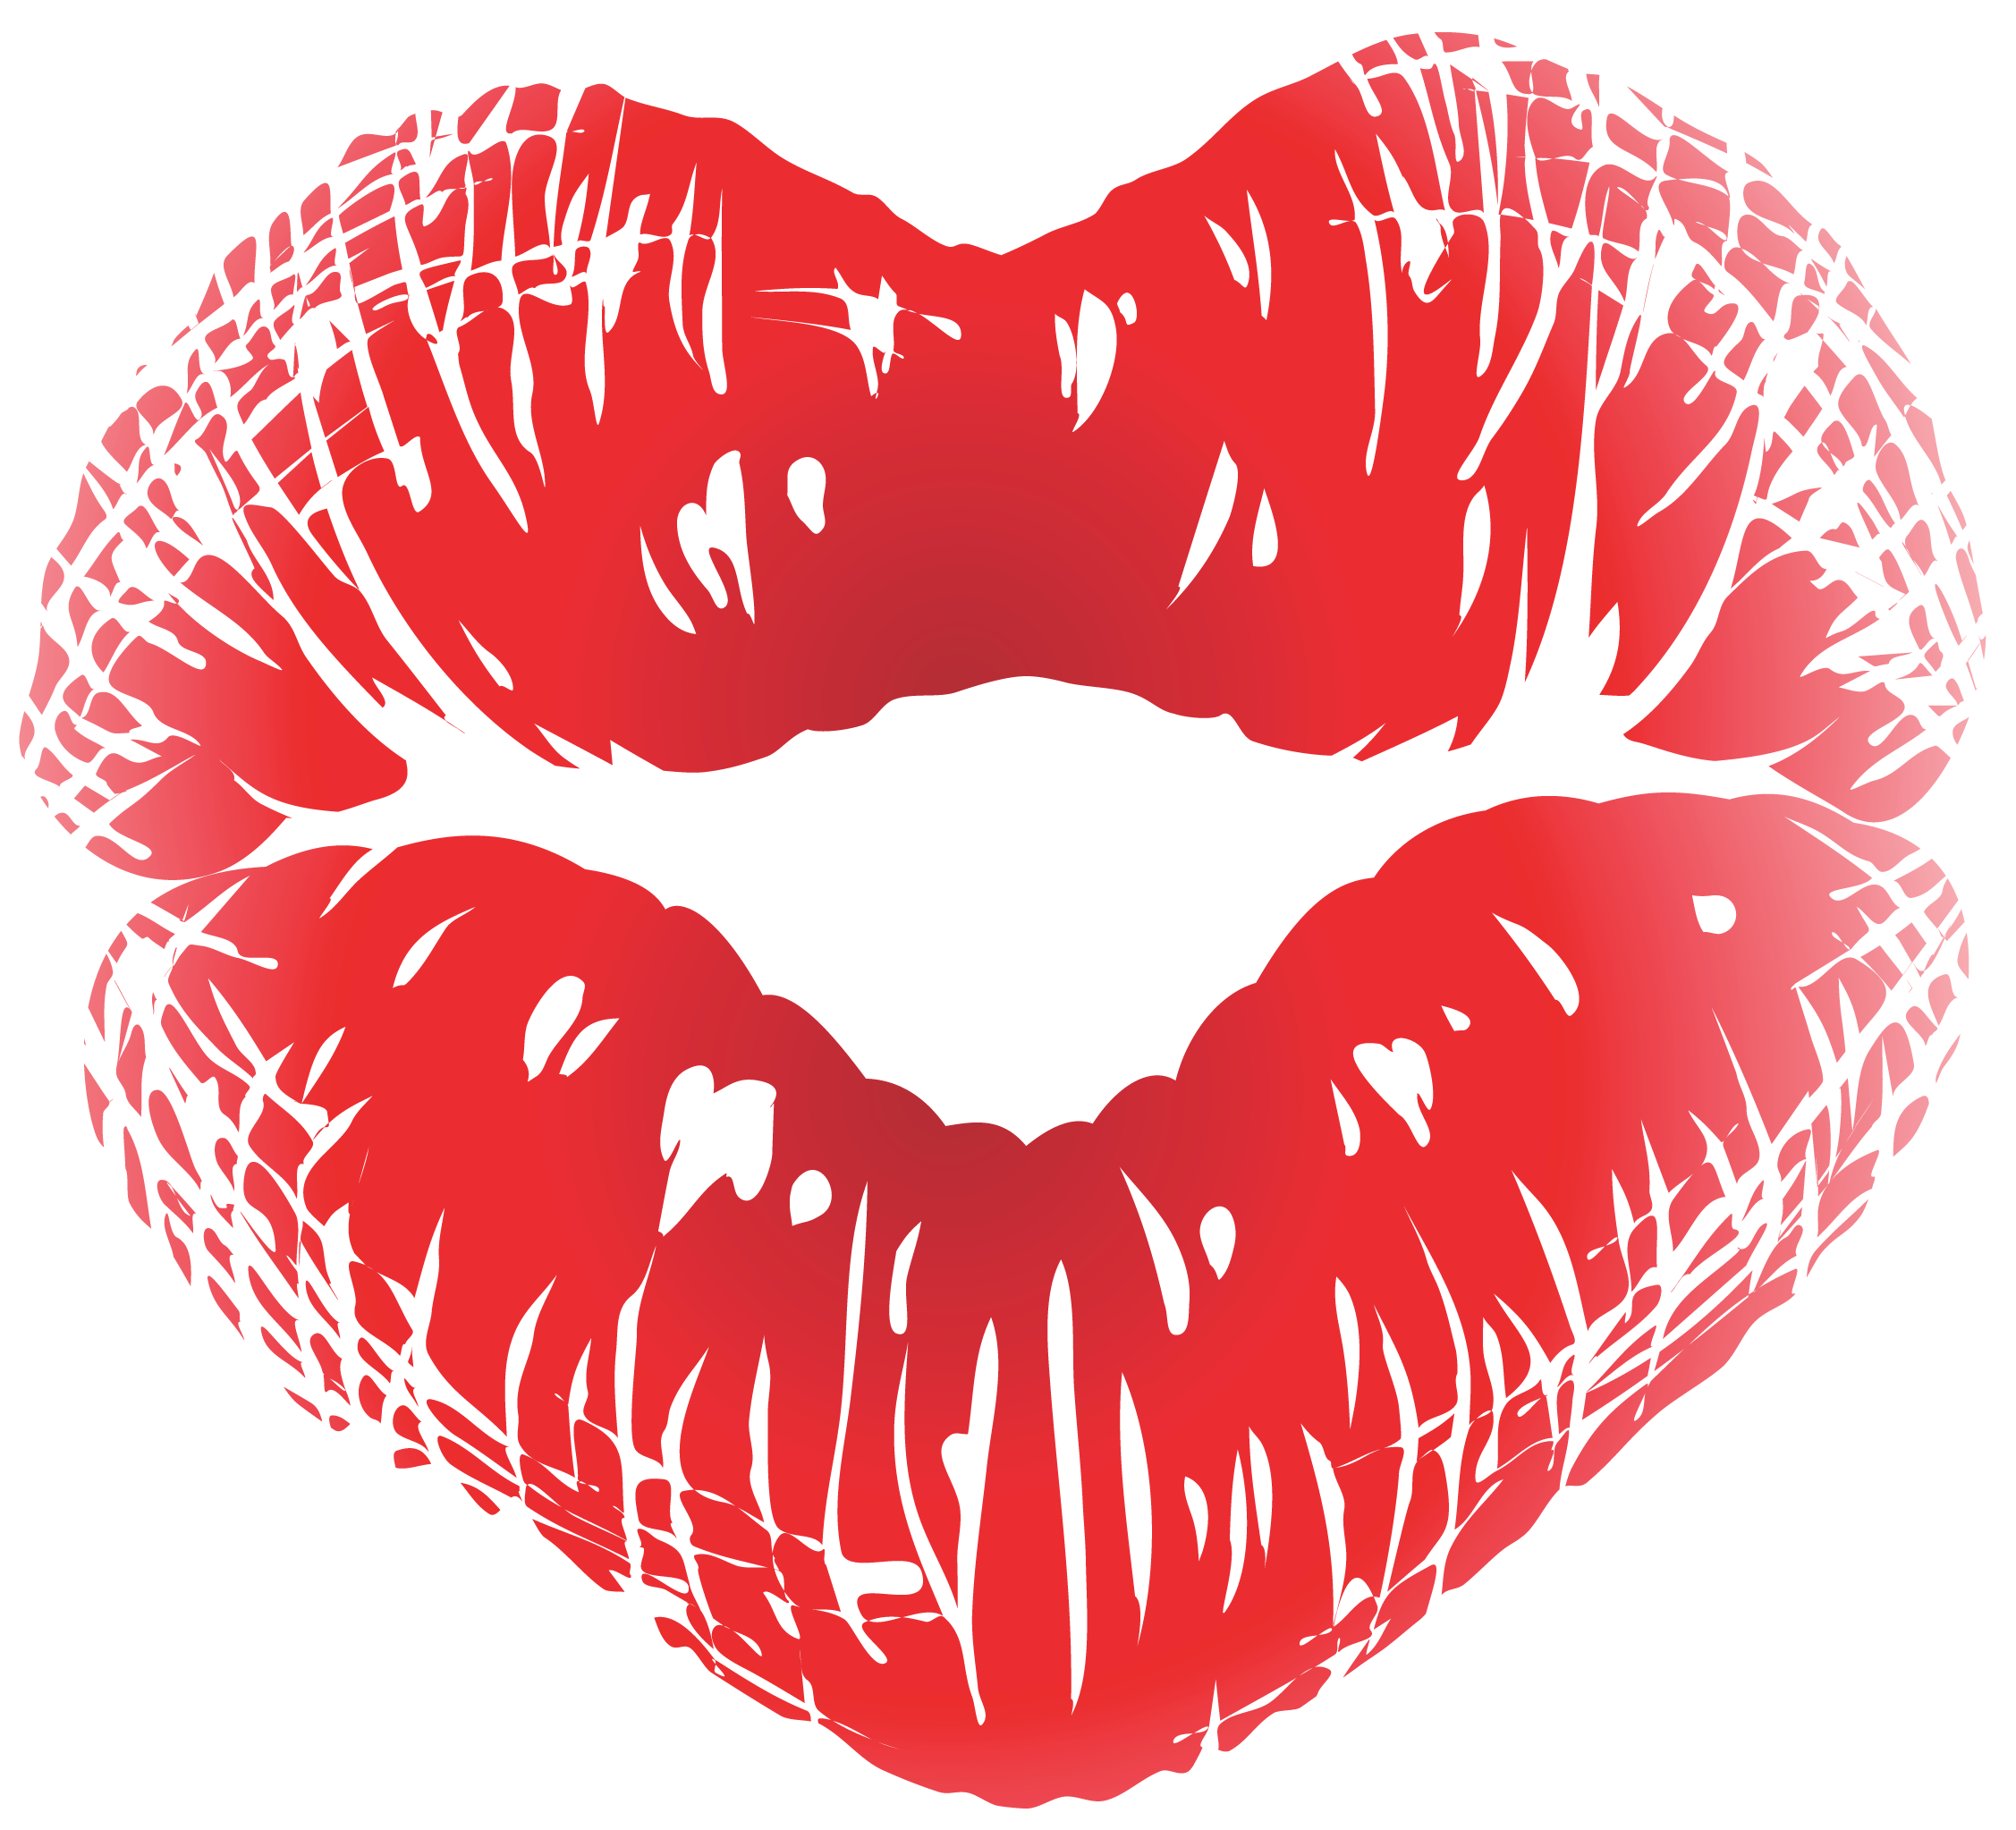 Kiss clipart images banner freeuse library Free Kiss Cliparts, Download Free Clip Art, Free Clip Art on Clipart ... banner freeuse library